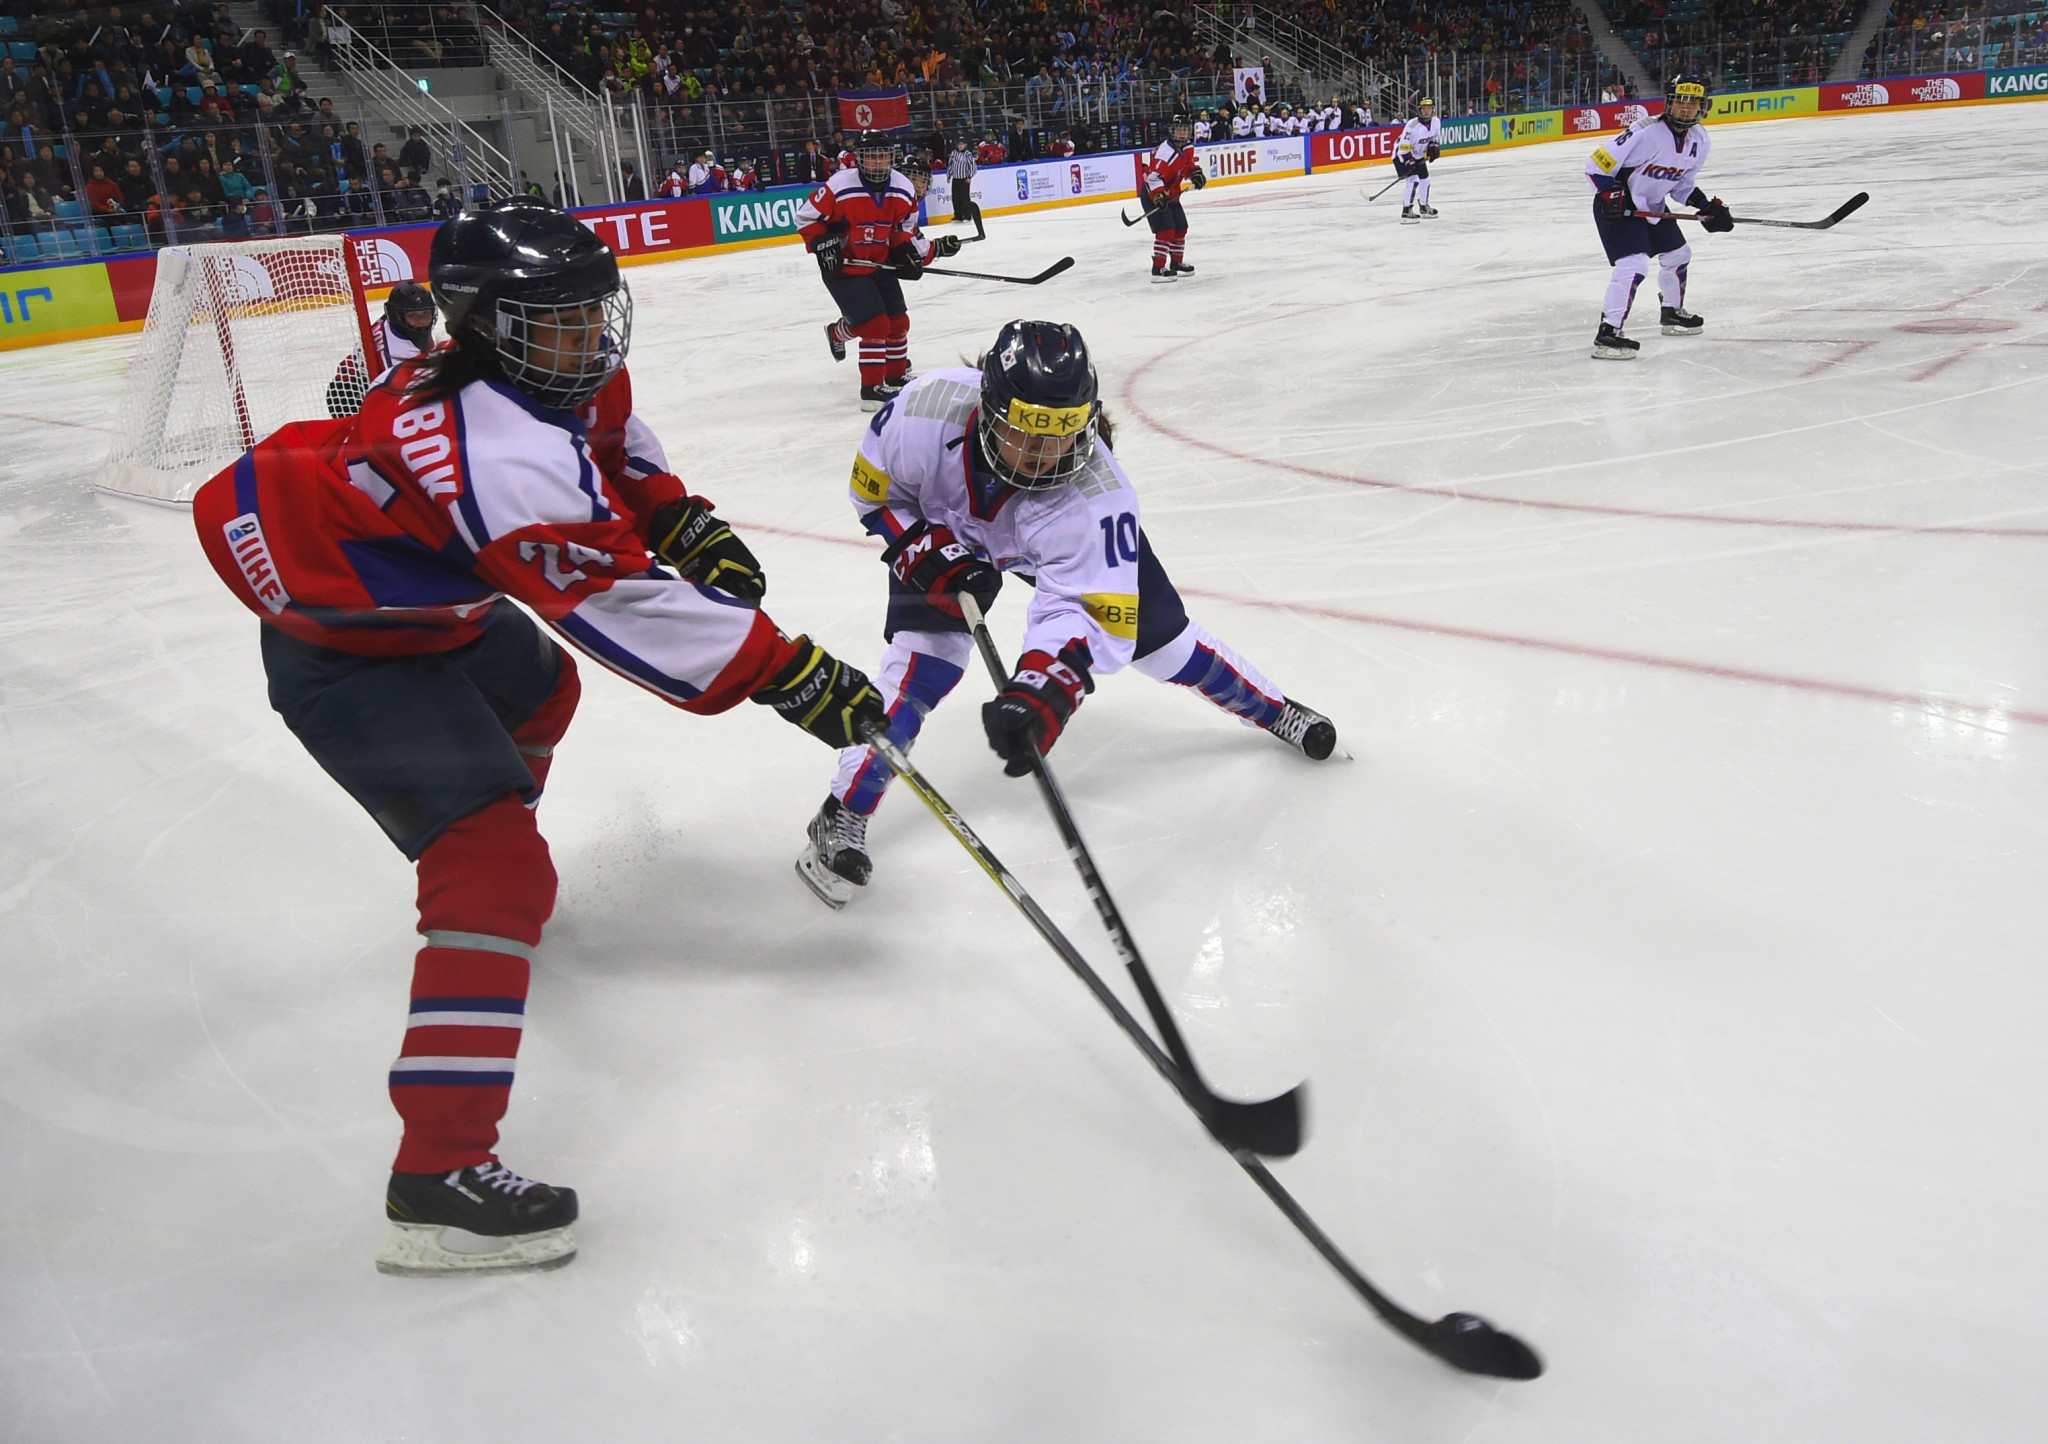 South Korean women's ice hockey coach Sarah Murray has criticised a proposed joint team with North Korea at next month's Winter Olympic Games in Pyeongchang ©Getty Images